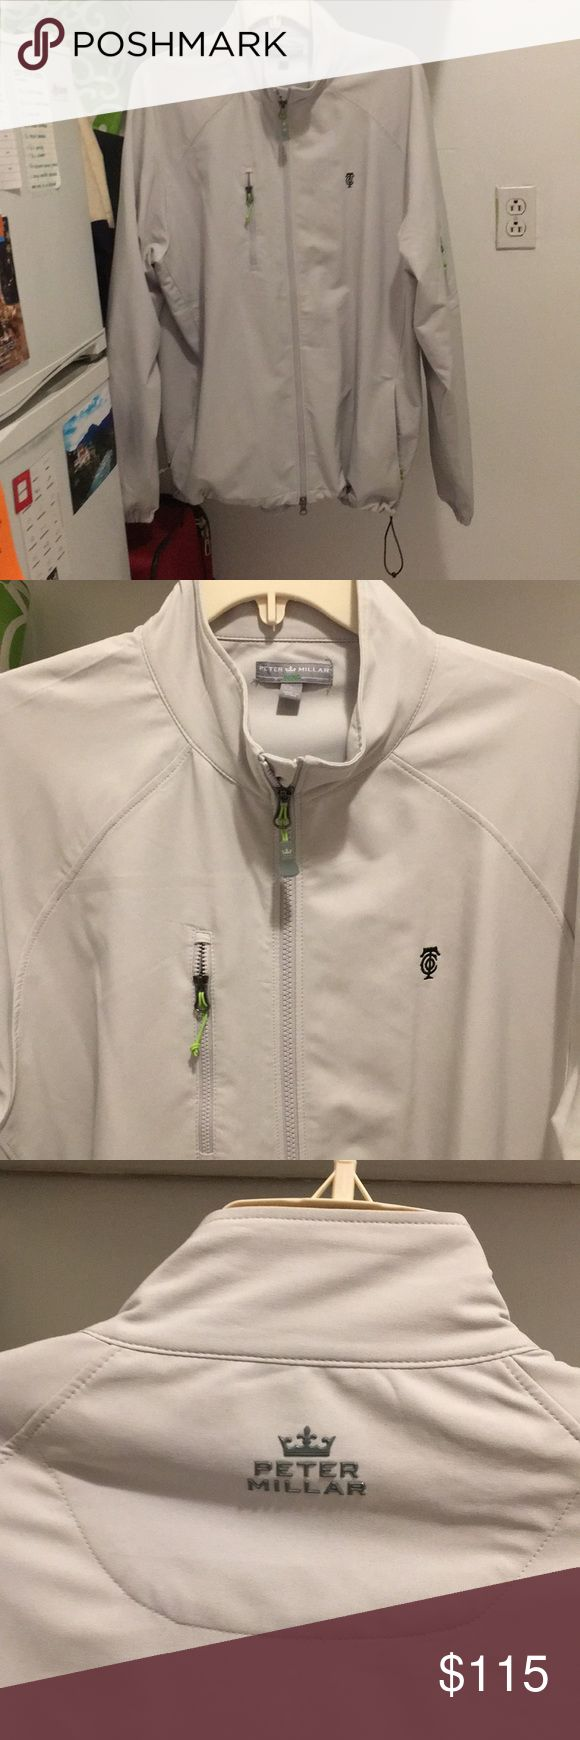 "Peter Millar Men's jacket Never-worn, Men's Peter Millar sporty jacket. Perfect for the gold course, tennis court, or any daily activity. Great, neutral color with catchy green detail on zippers. Emblem on upper left is ""OTC""—stands for Old Town Club, golf course in North Carolina recently globally ranked. Peter Millar Jackets & Coats Lightweight & Shirt Jackets"